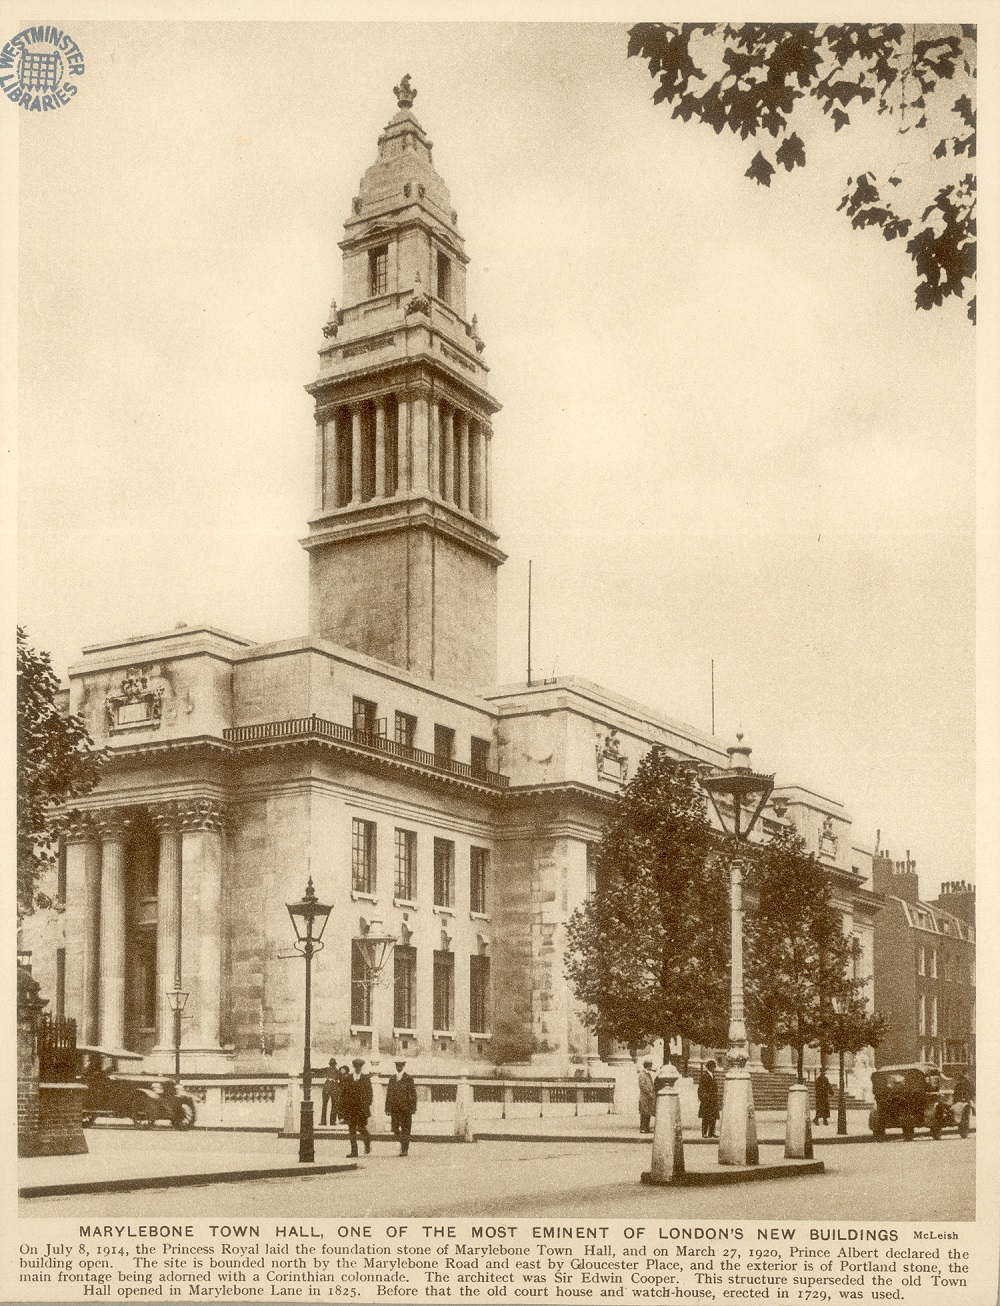 Marylebone Town Hall complete in 1914.